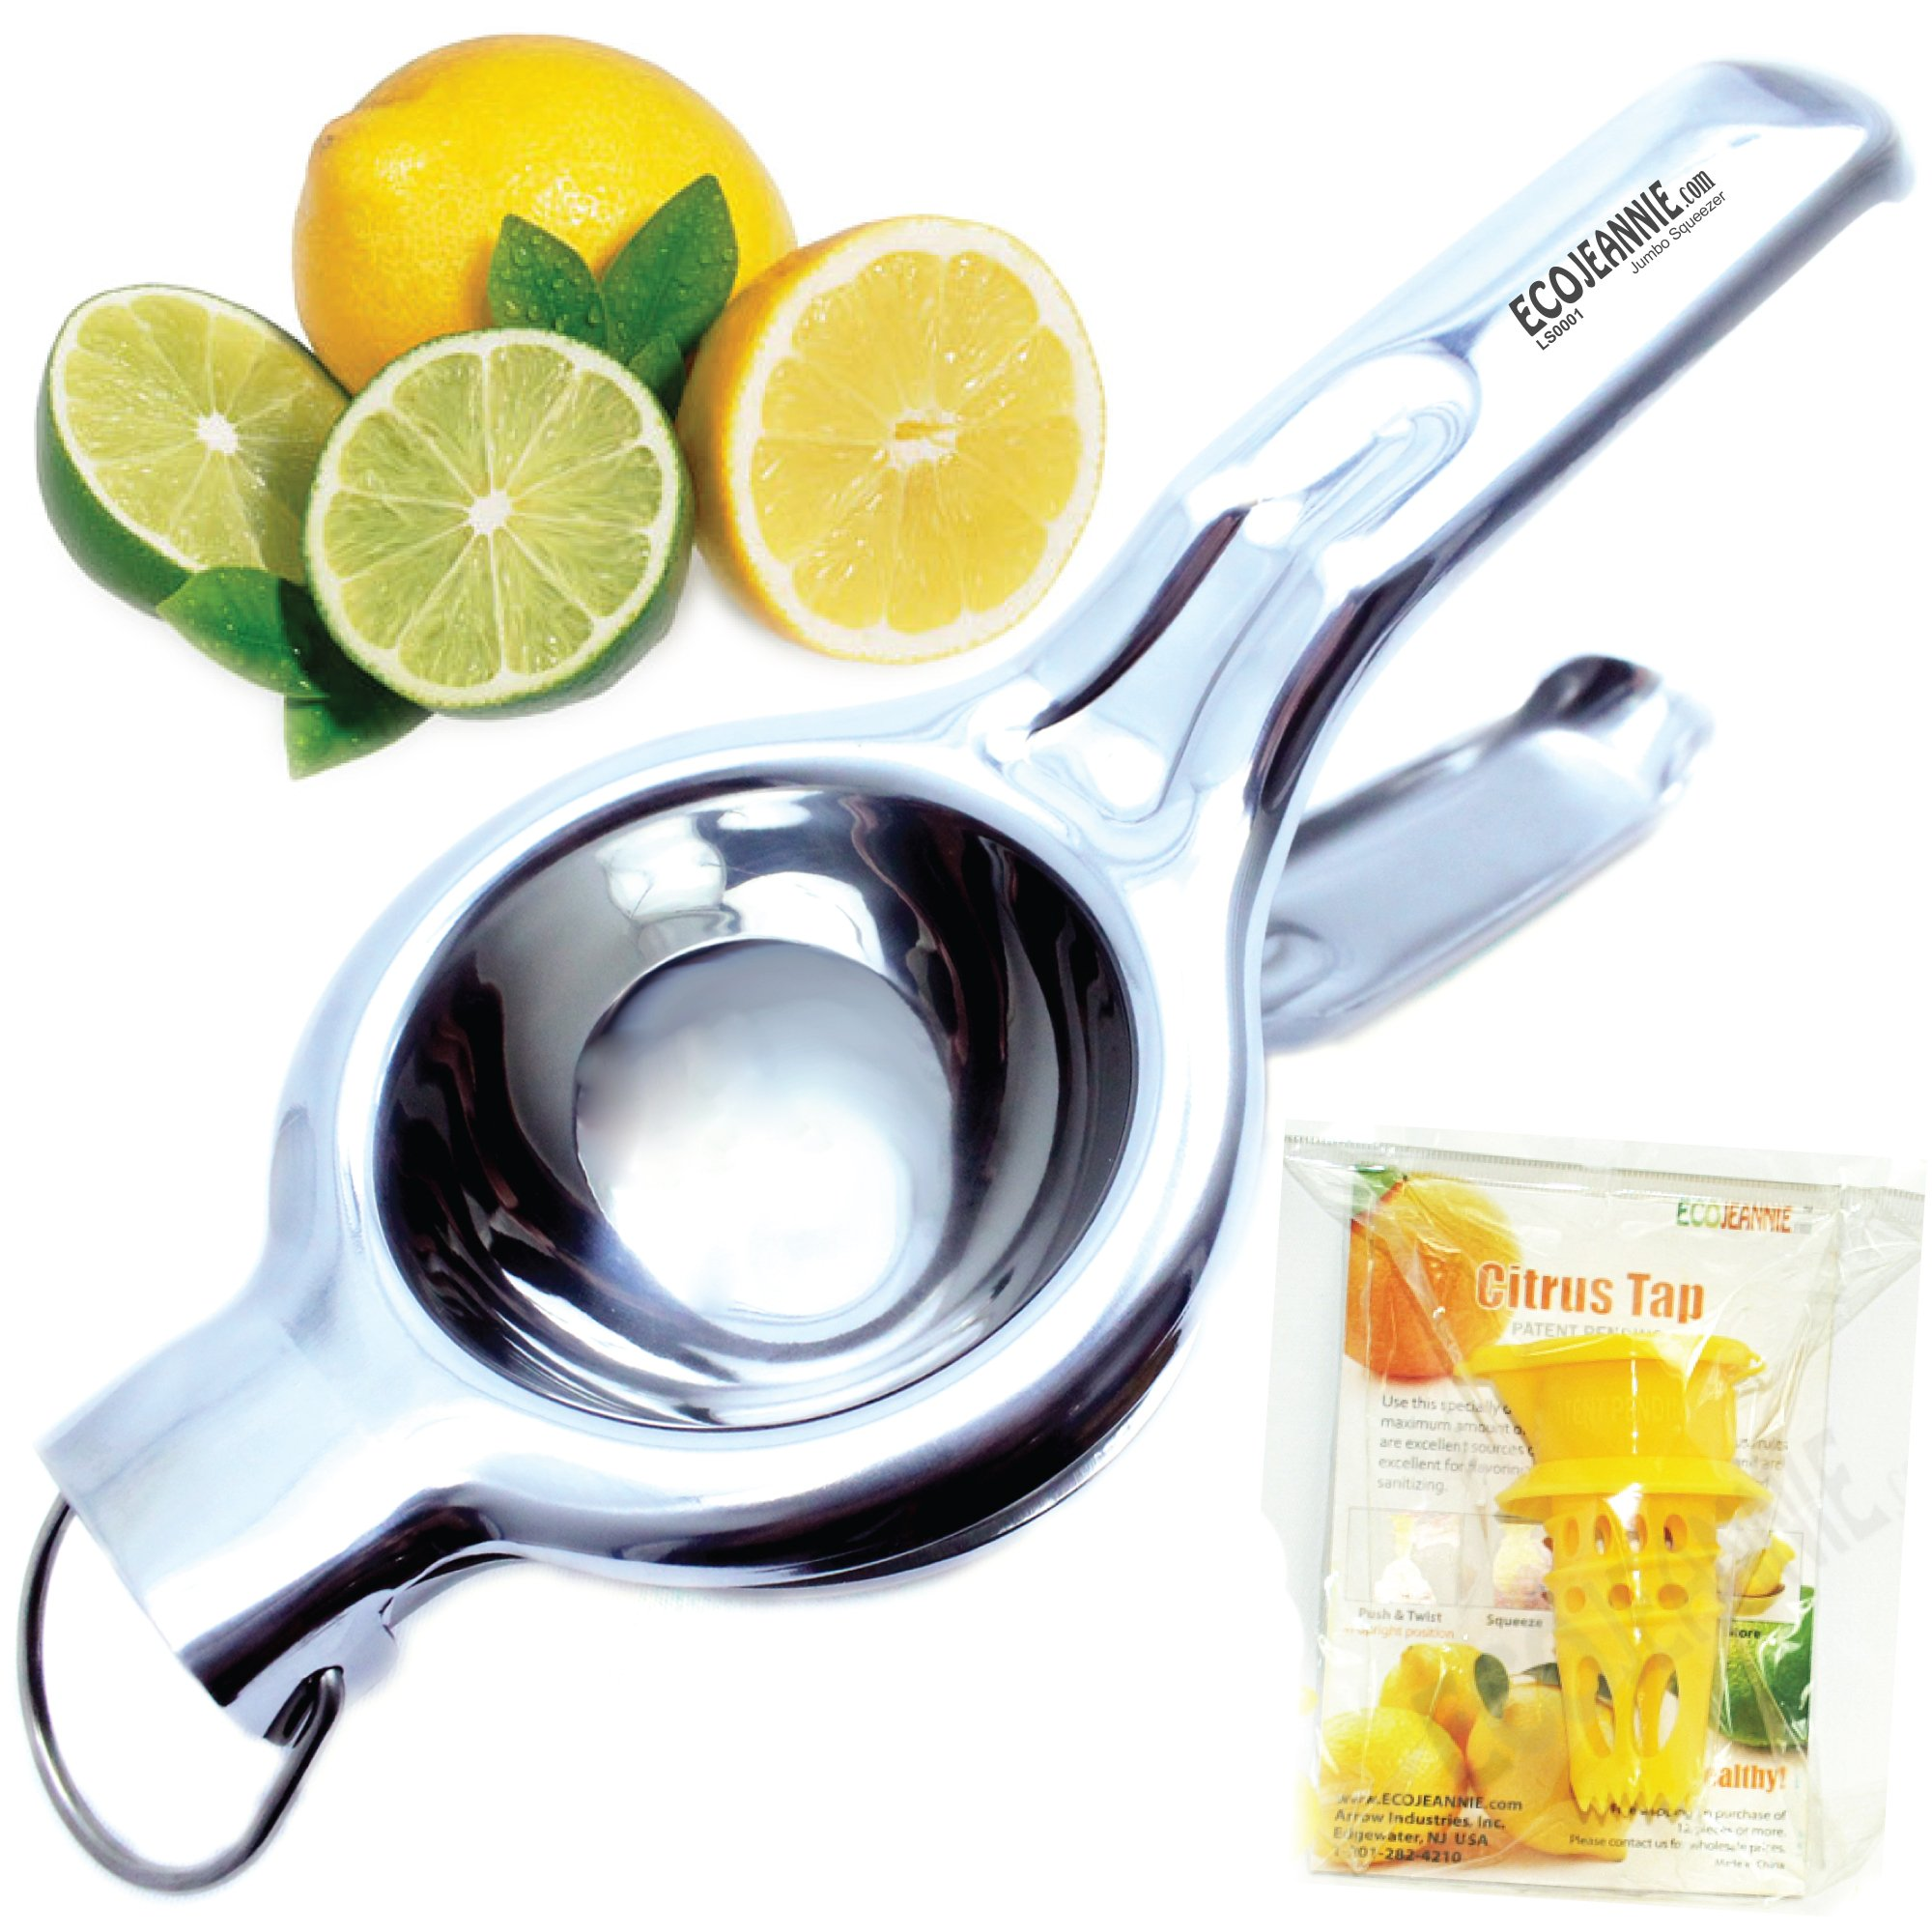 EcoJeannie LS0001 Professional Jumbo Stainless Steel Lemon and Lime Squeezer and Juicer with Free Citrus Tap, 9.25-Inch, Silver by EcoJeannie (Image #1)